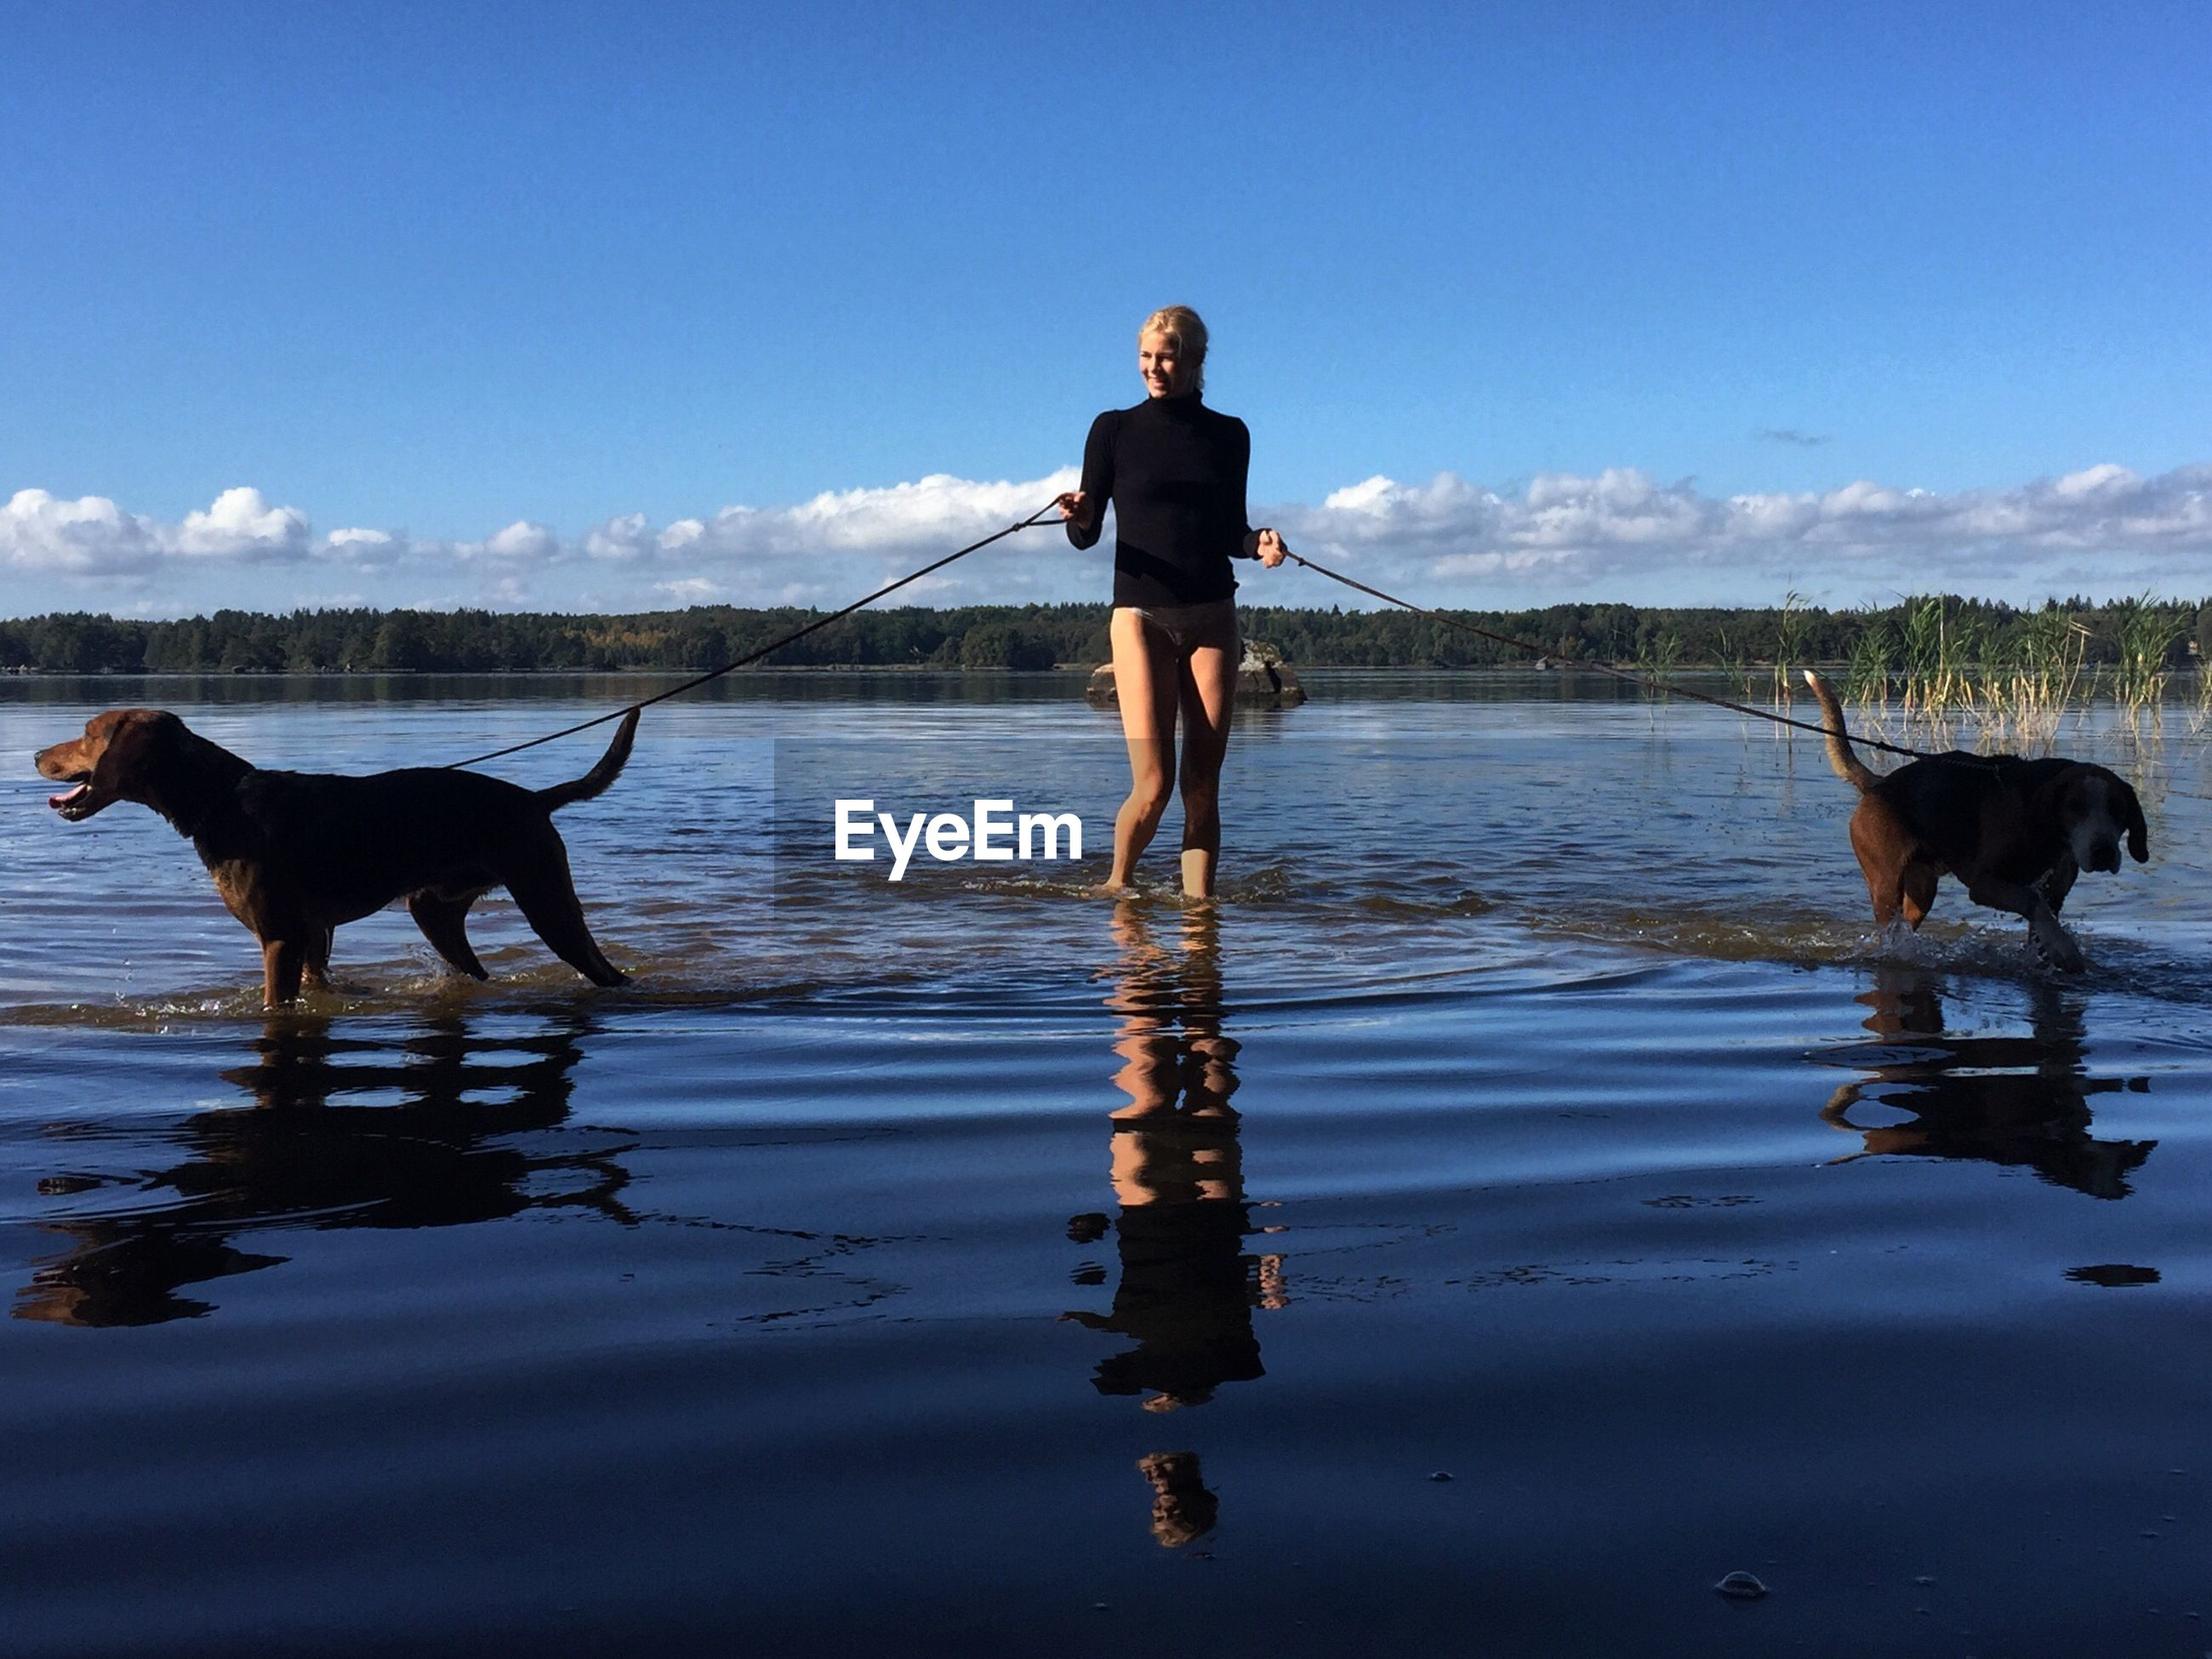 Woman with dogs standing in lake against sky